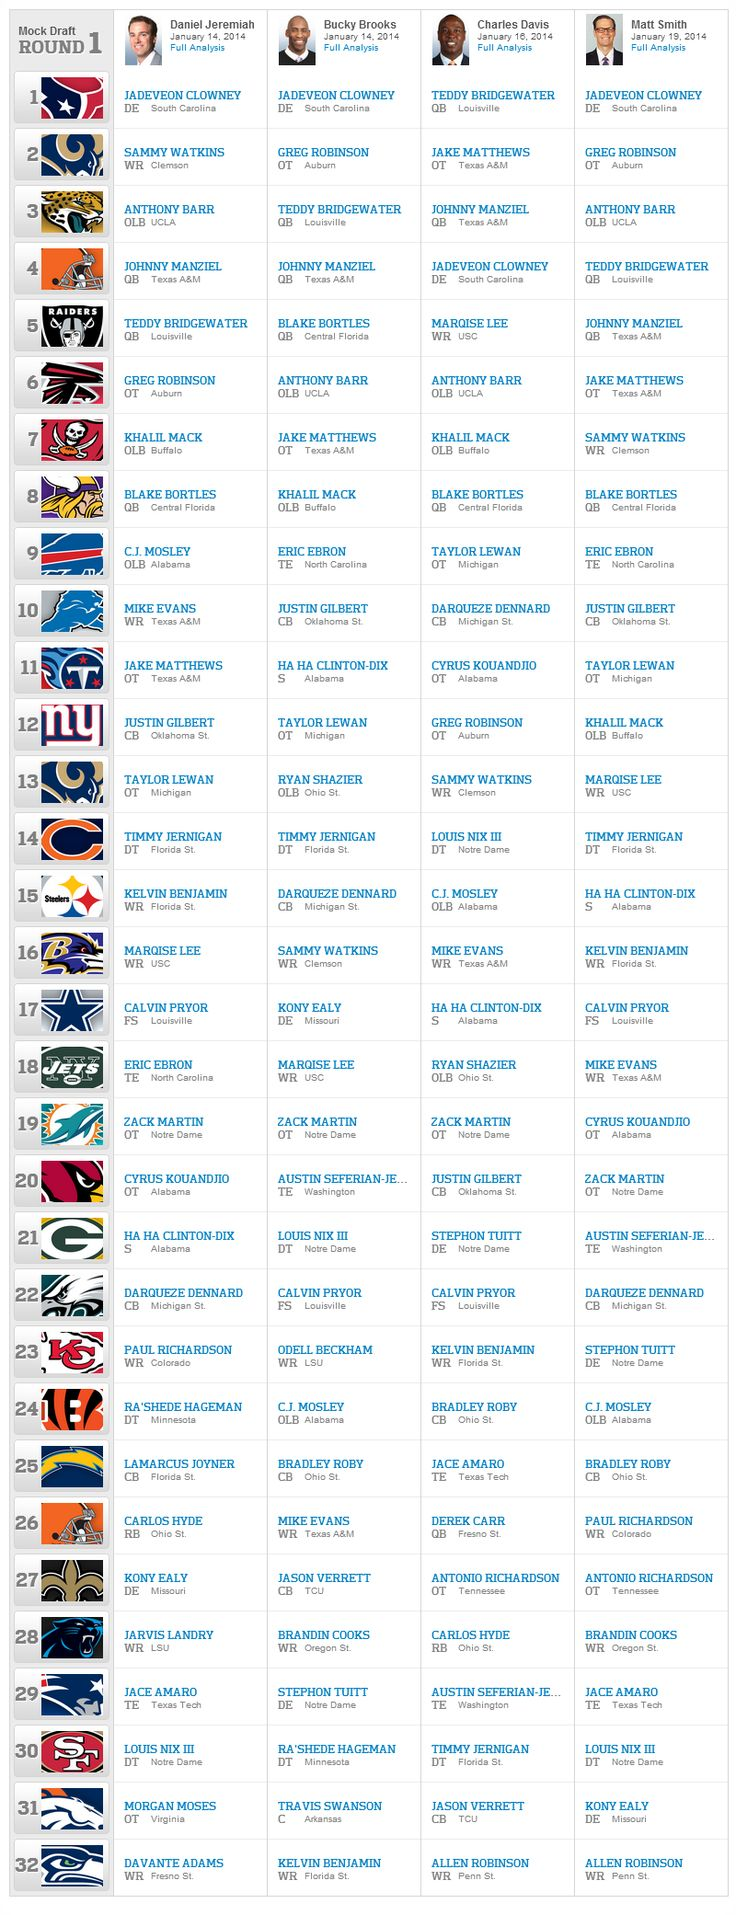 2014 NFL Mock Draft Central - ROAD TO THE 2014 NFL DRAFT 2014 - Dallas Cowboys 2014 Mock Draft 1.0 - as of 01-26-2014, 2014 NFL draft, Dallas Cowboys Draft 2014, NFL, NFL Dallas Cowboys Mock Draft, NFL Draft 2014